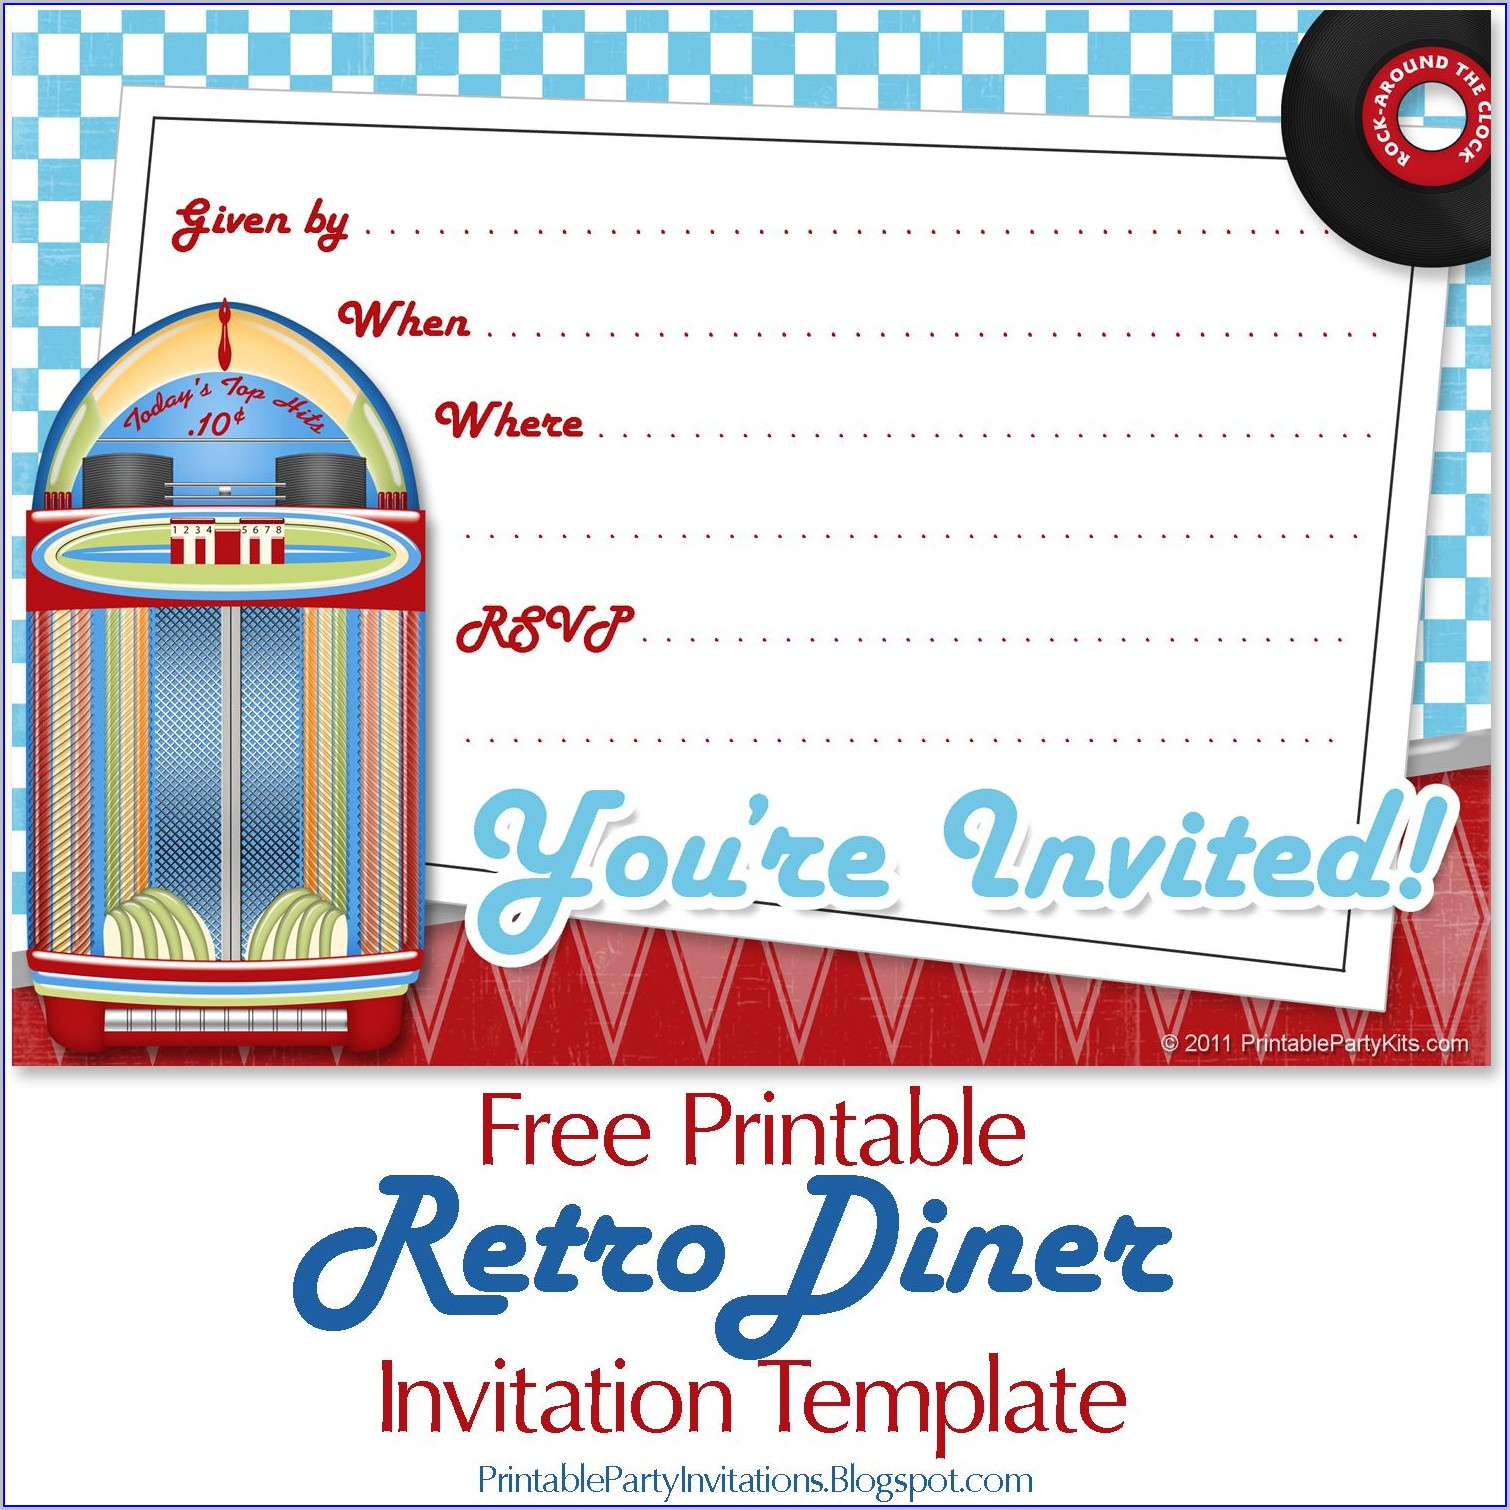 Free Printable 50's Party Invitation Templates Free